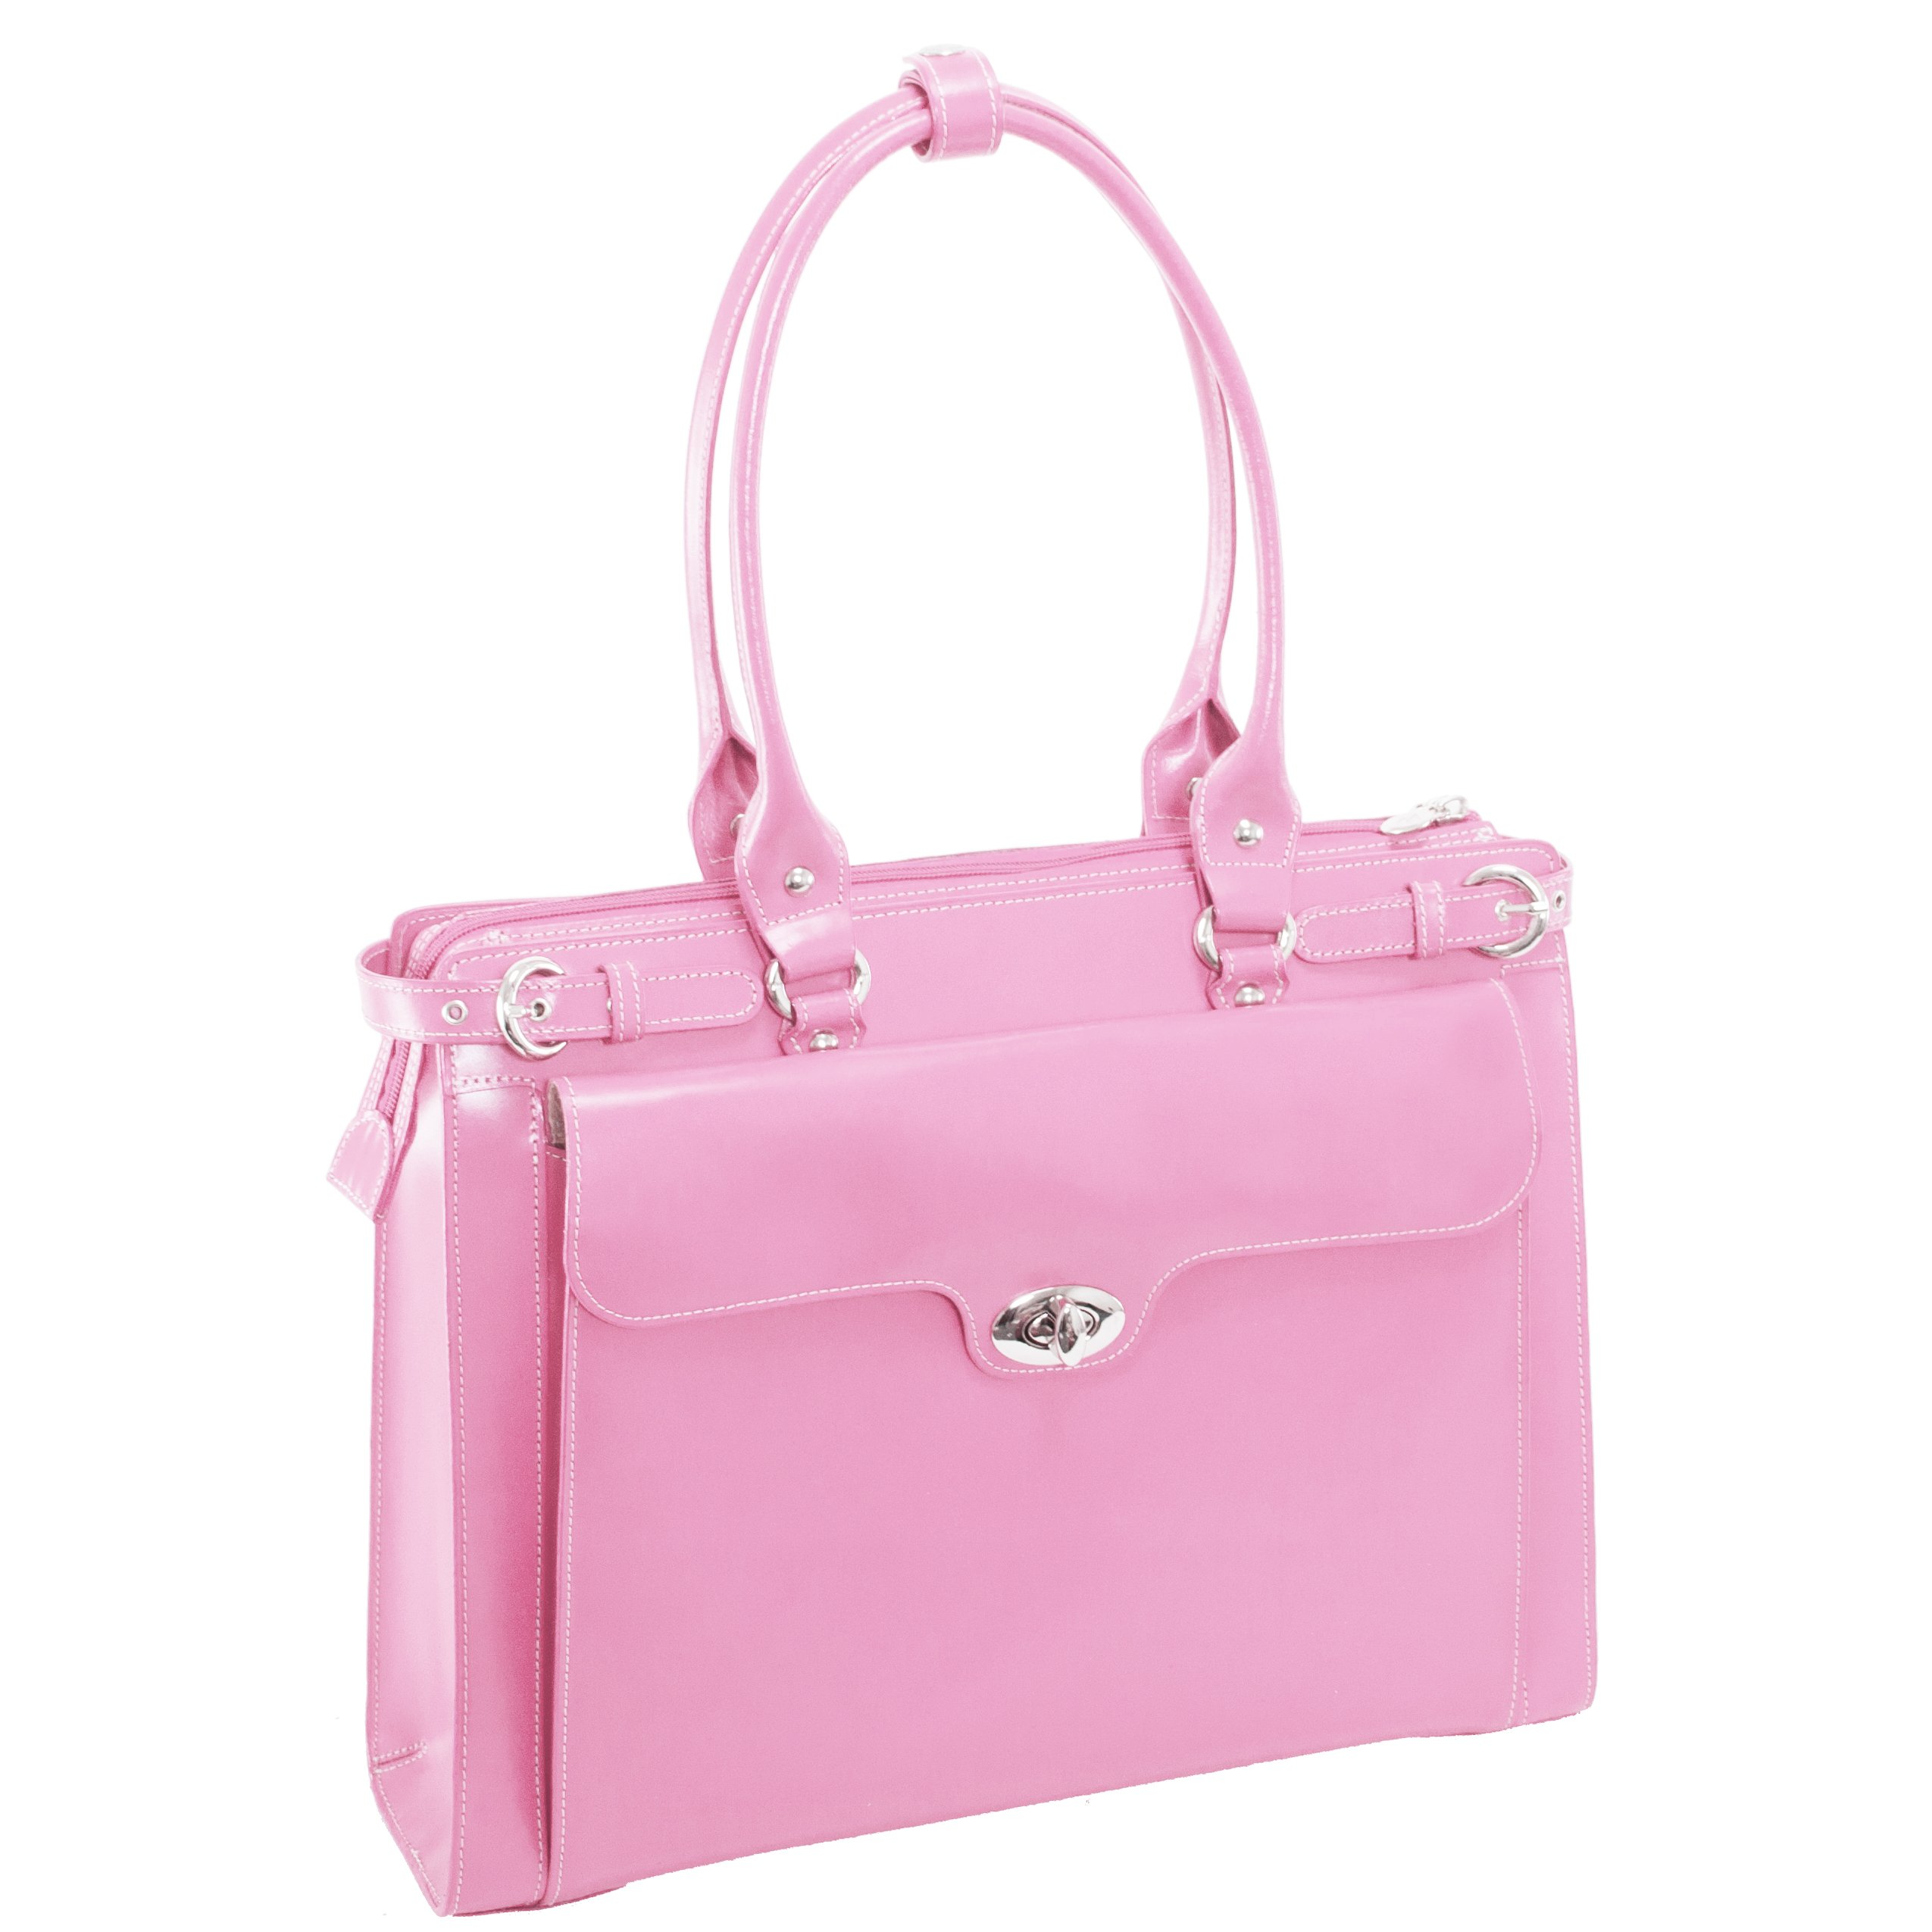 Women's Leather Tote With Removeable Sleeve, Leather, Small, Pink - WINNETKA | McKlein